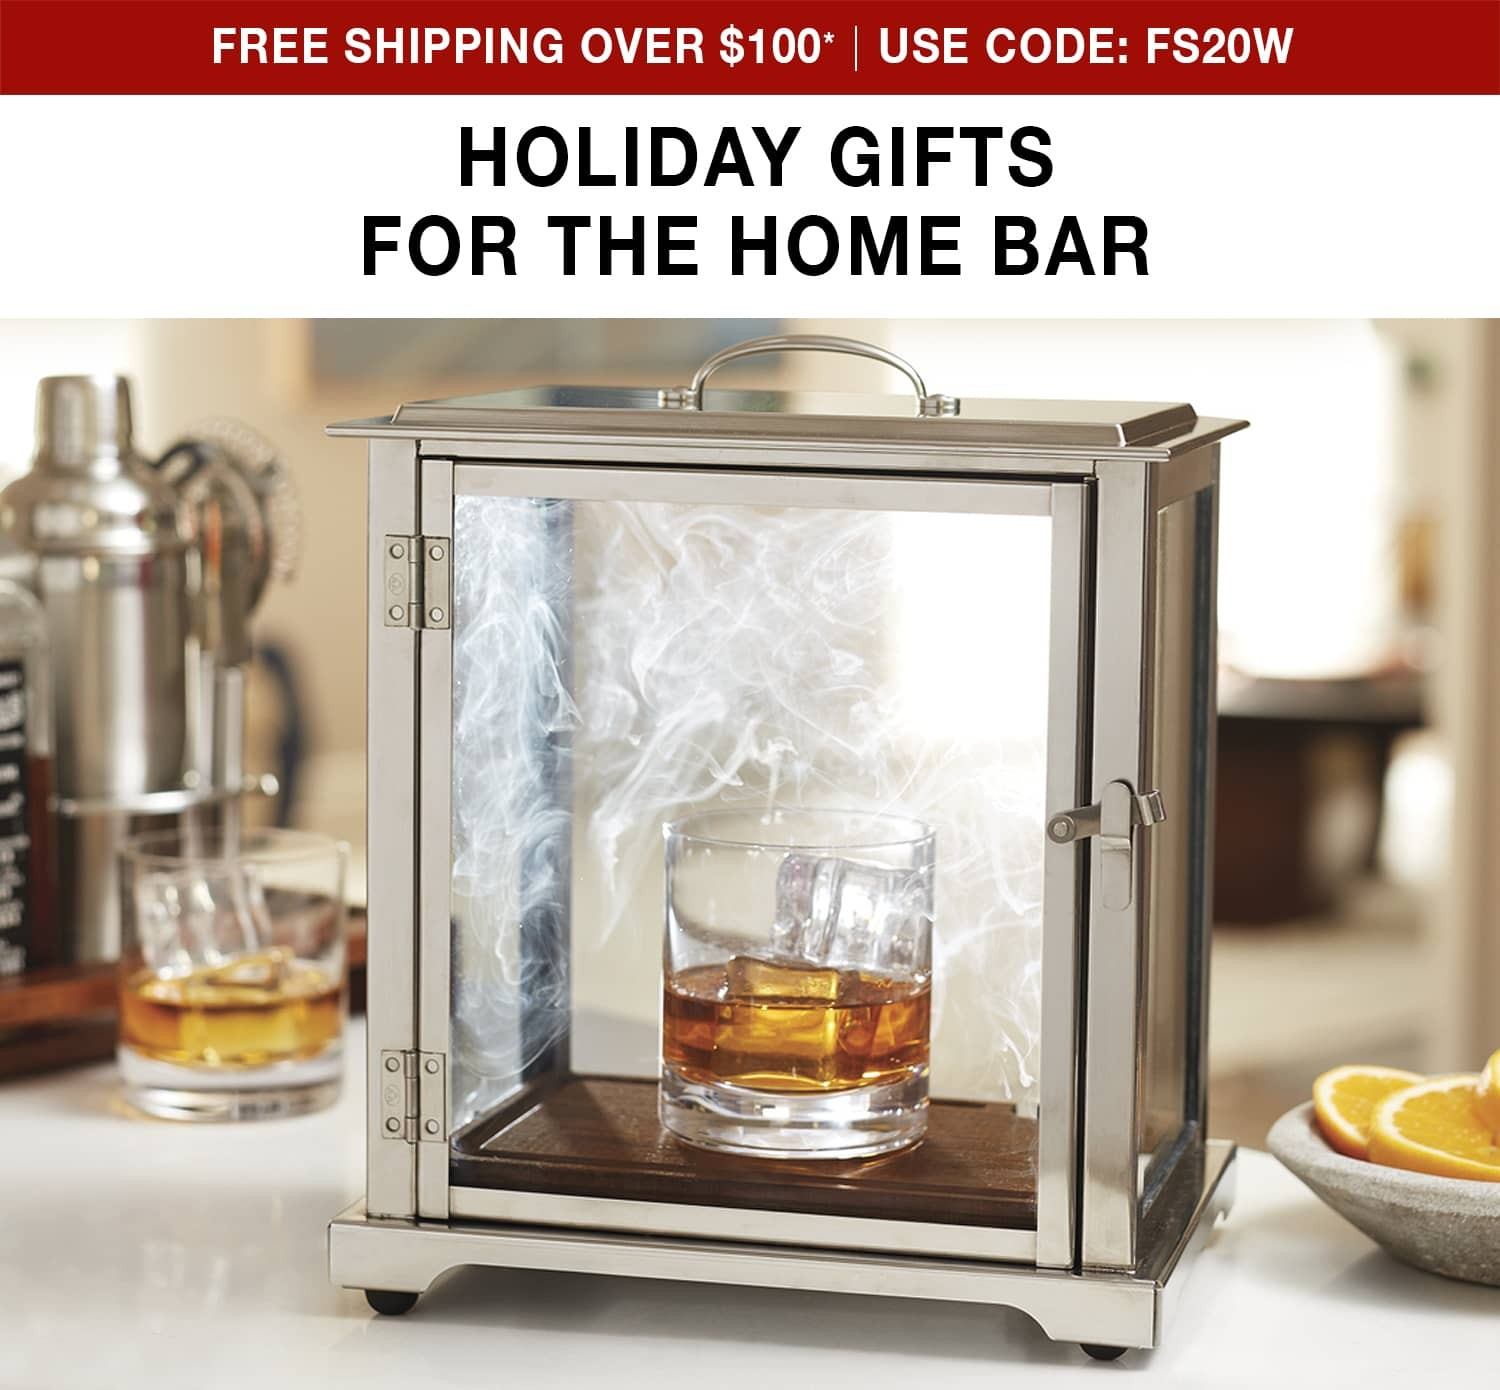 Holiday Gifts For the Home Bar - Free ground shipping on orders over $100 use code FS20W